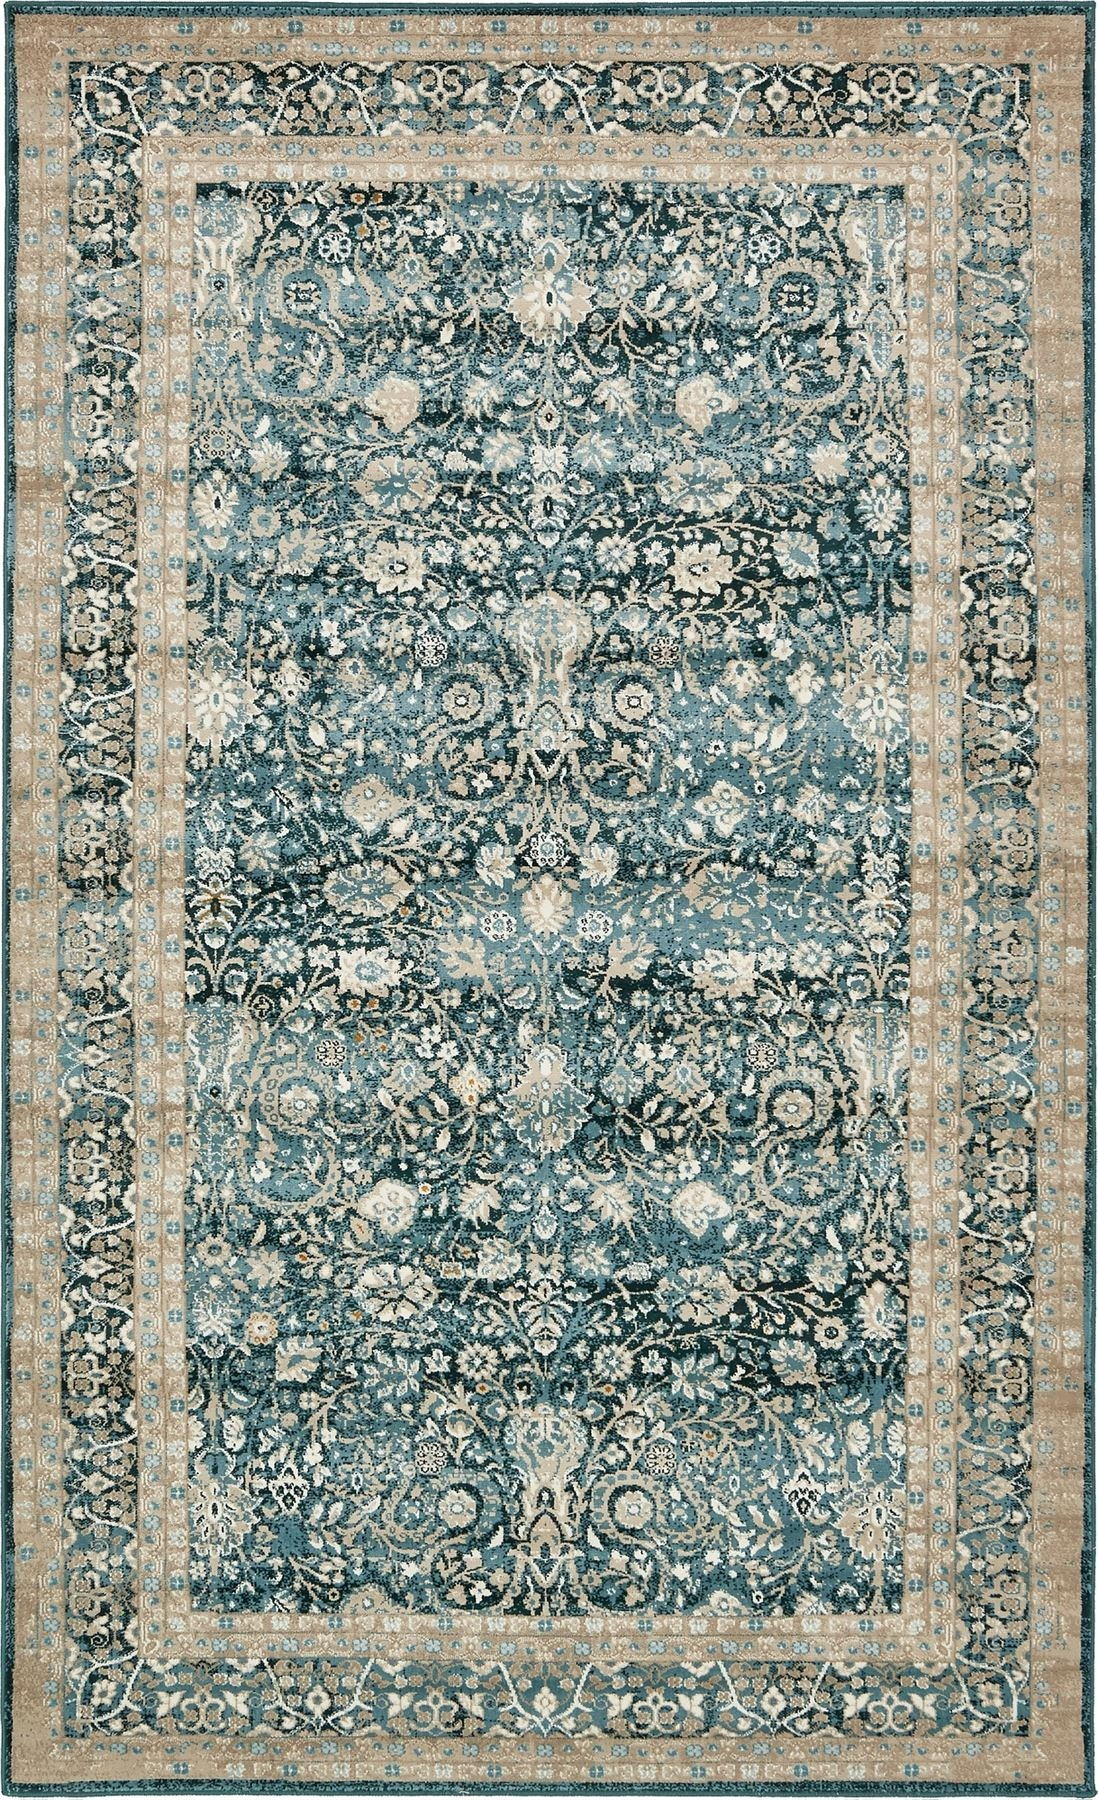 Traditional Carpets Vintage Modern Rug Floor Rug Area Carpet Ebay With Regard To Traditional Carpets (Image 8 of 15)